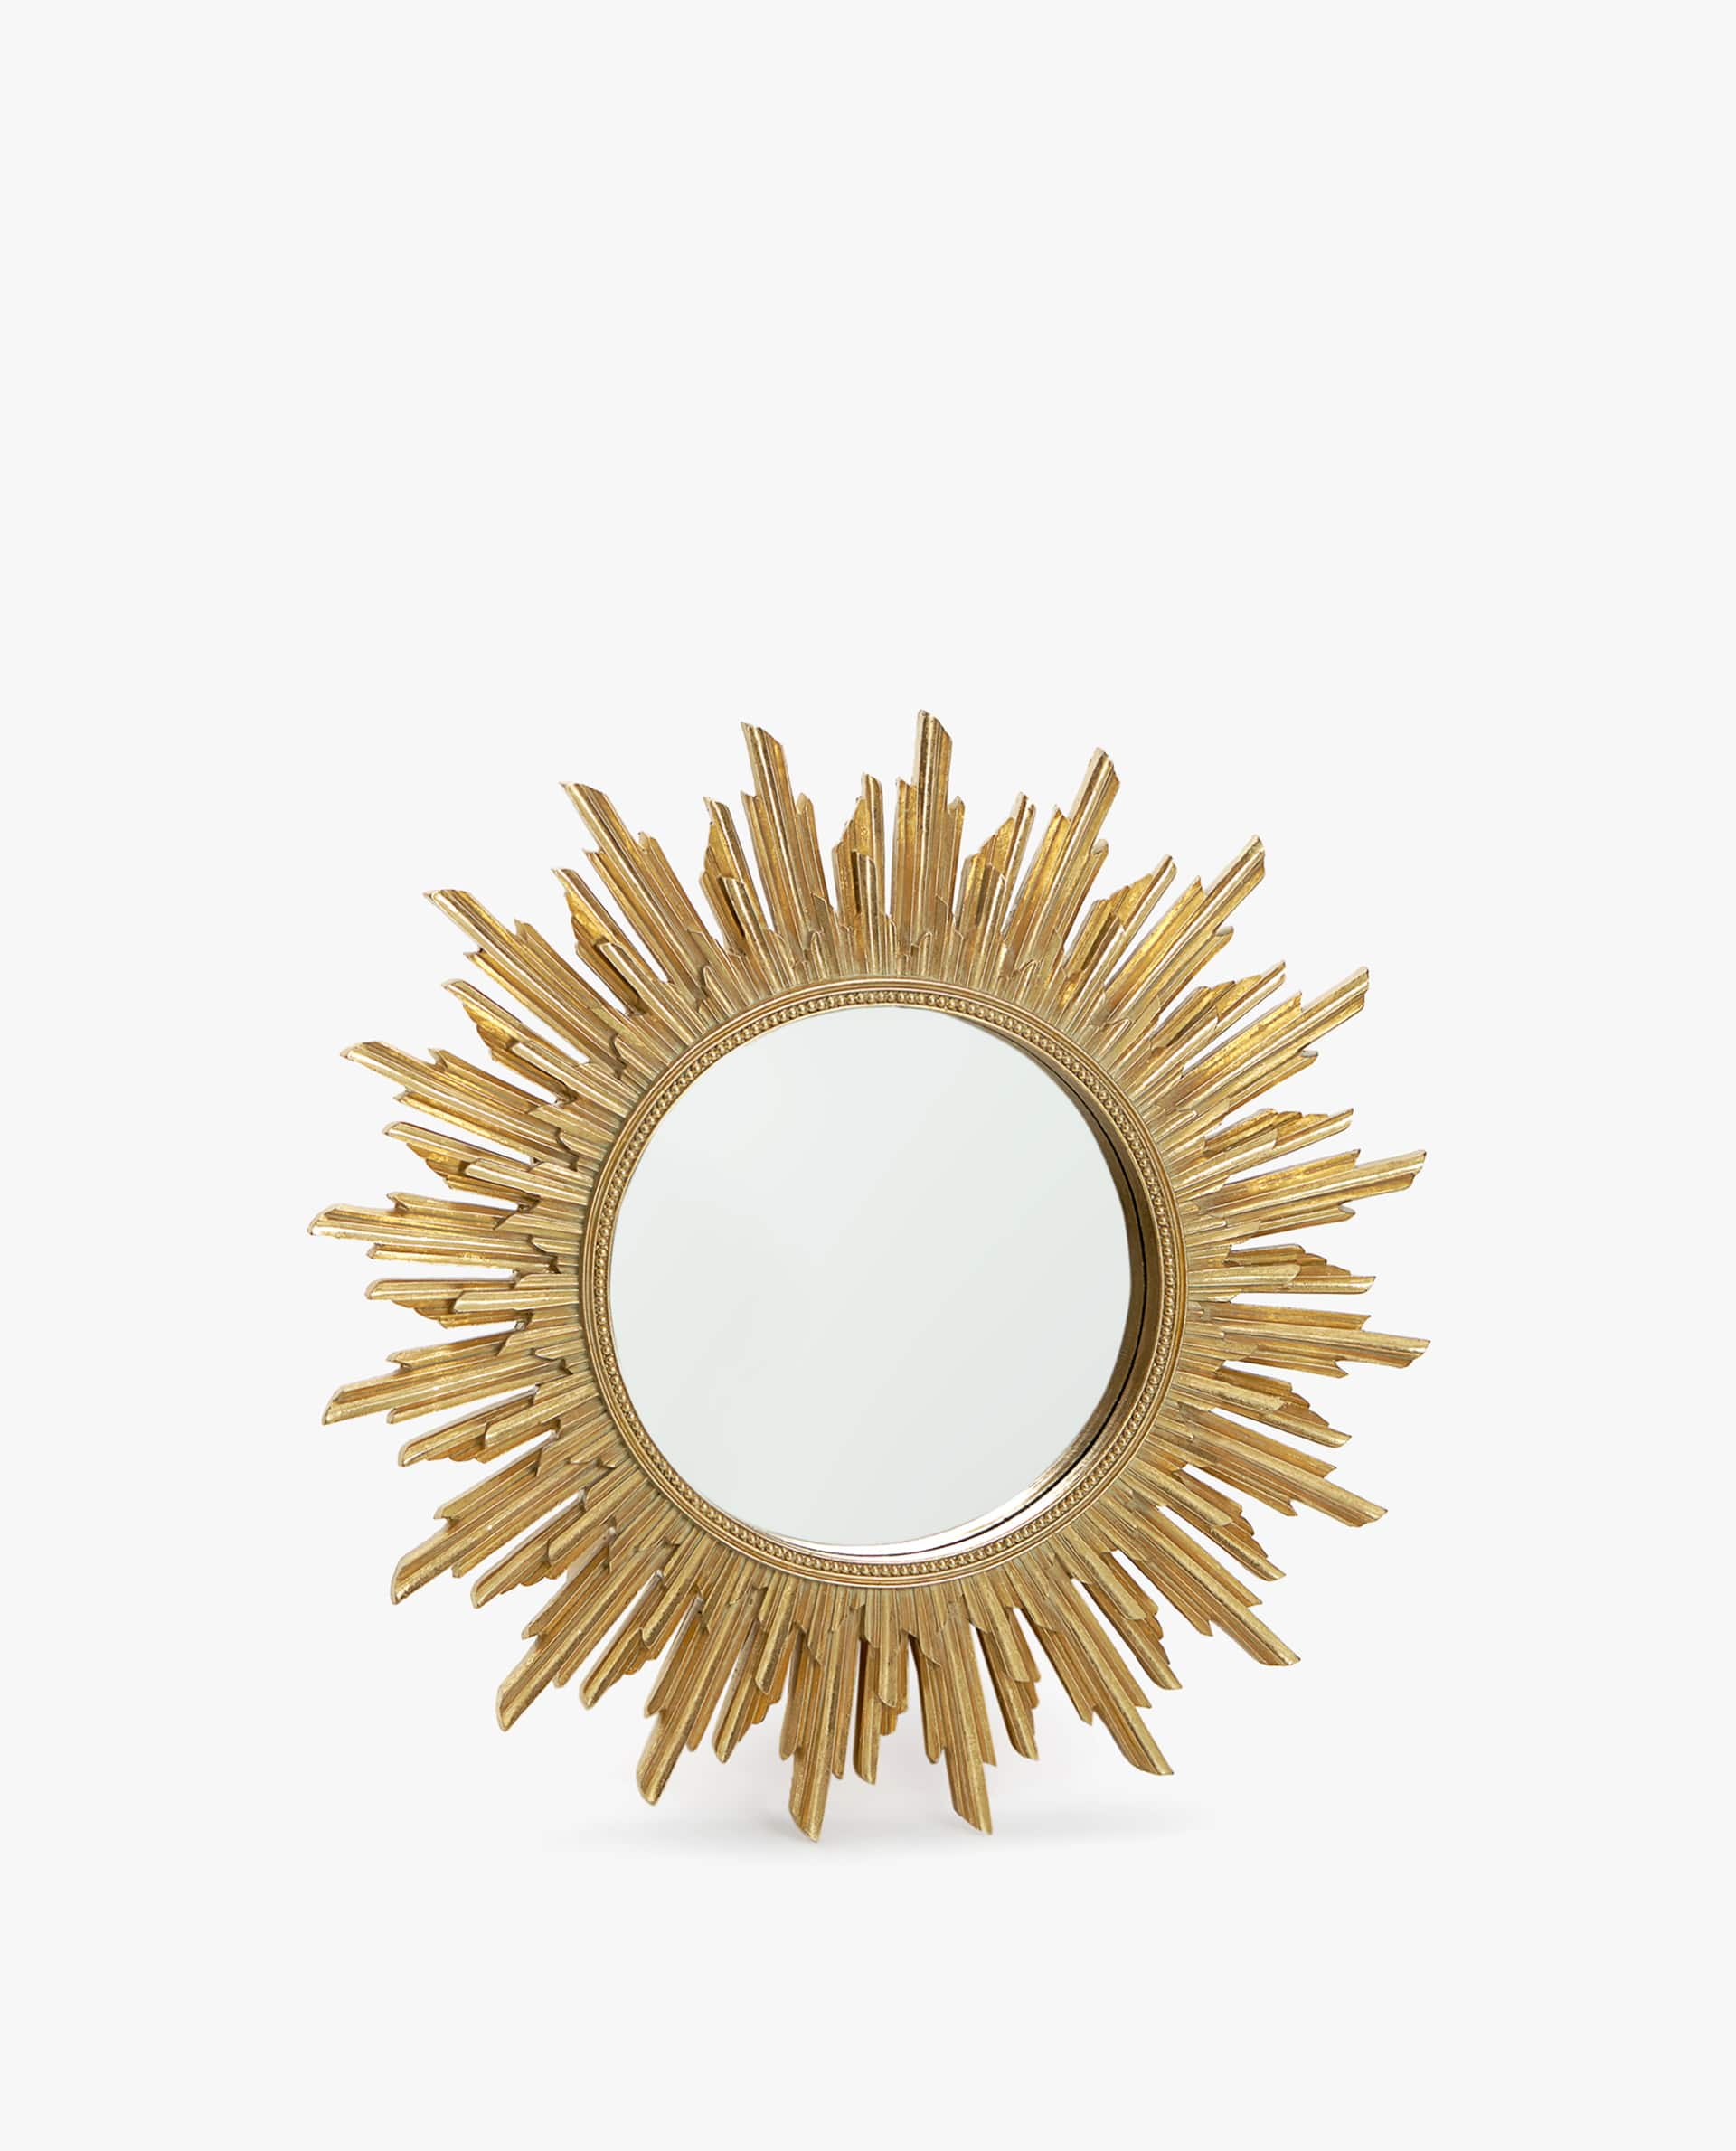 Sun Shaped Mirrors Small Sun Shaped Mirror